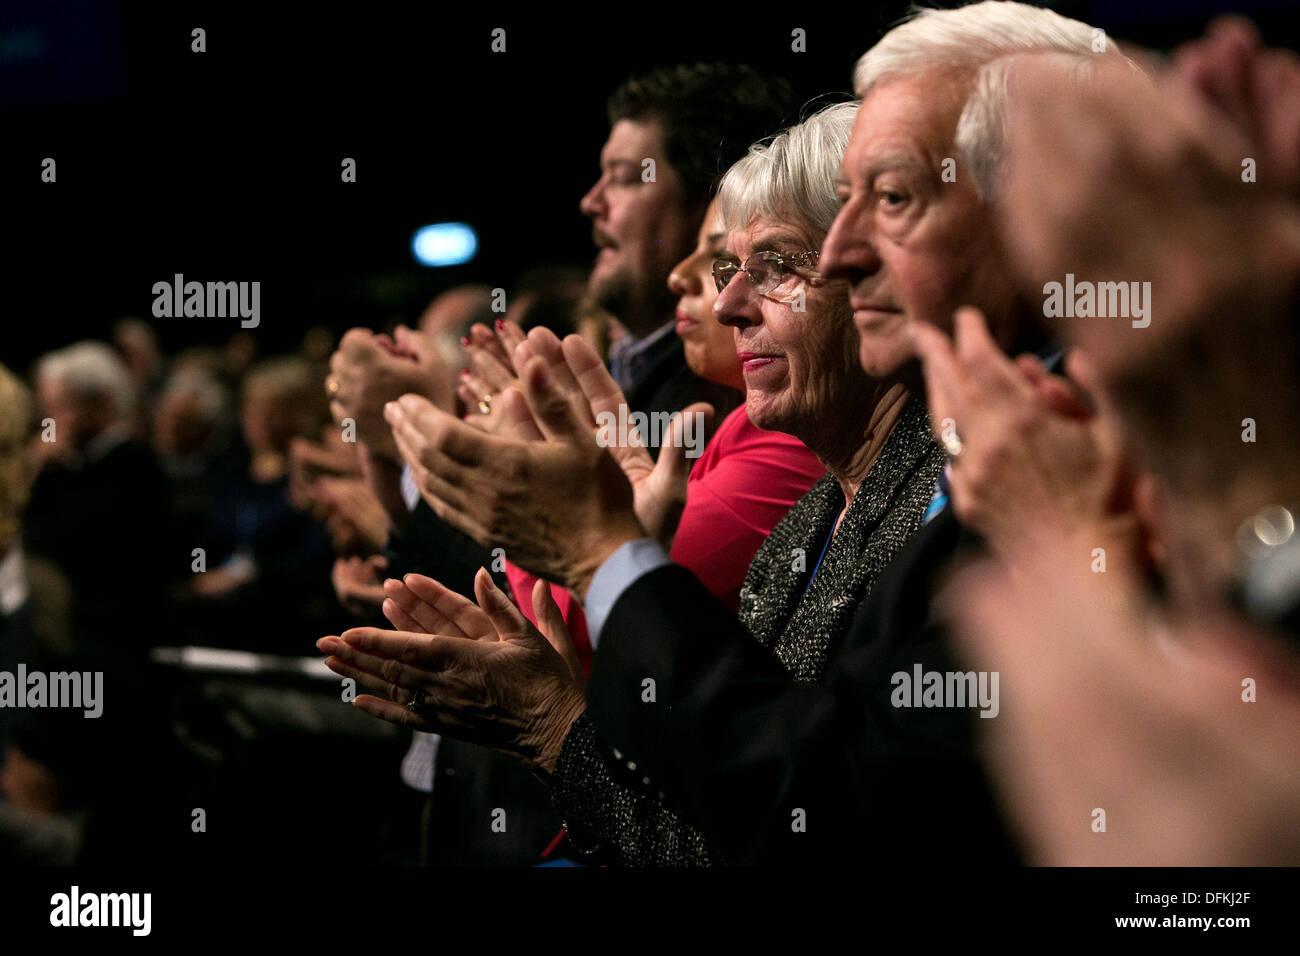 The Prime Minister closes the Conservative Party Conference at Manchester Central with his keynote speech. audience members - Stock Image